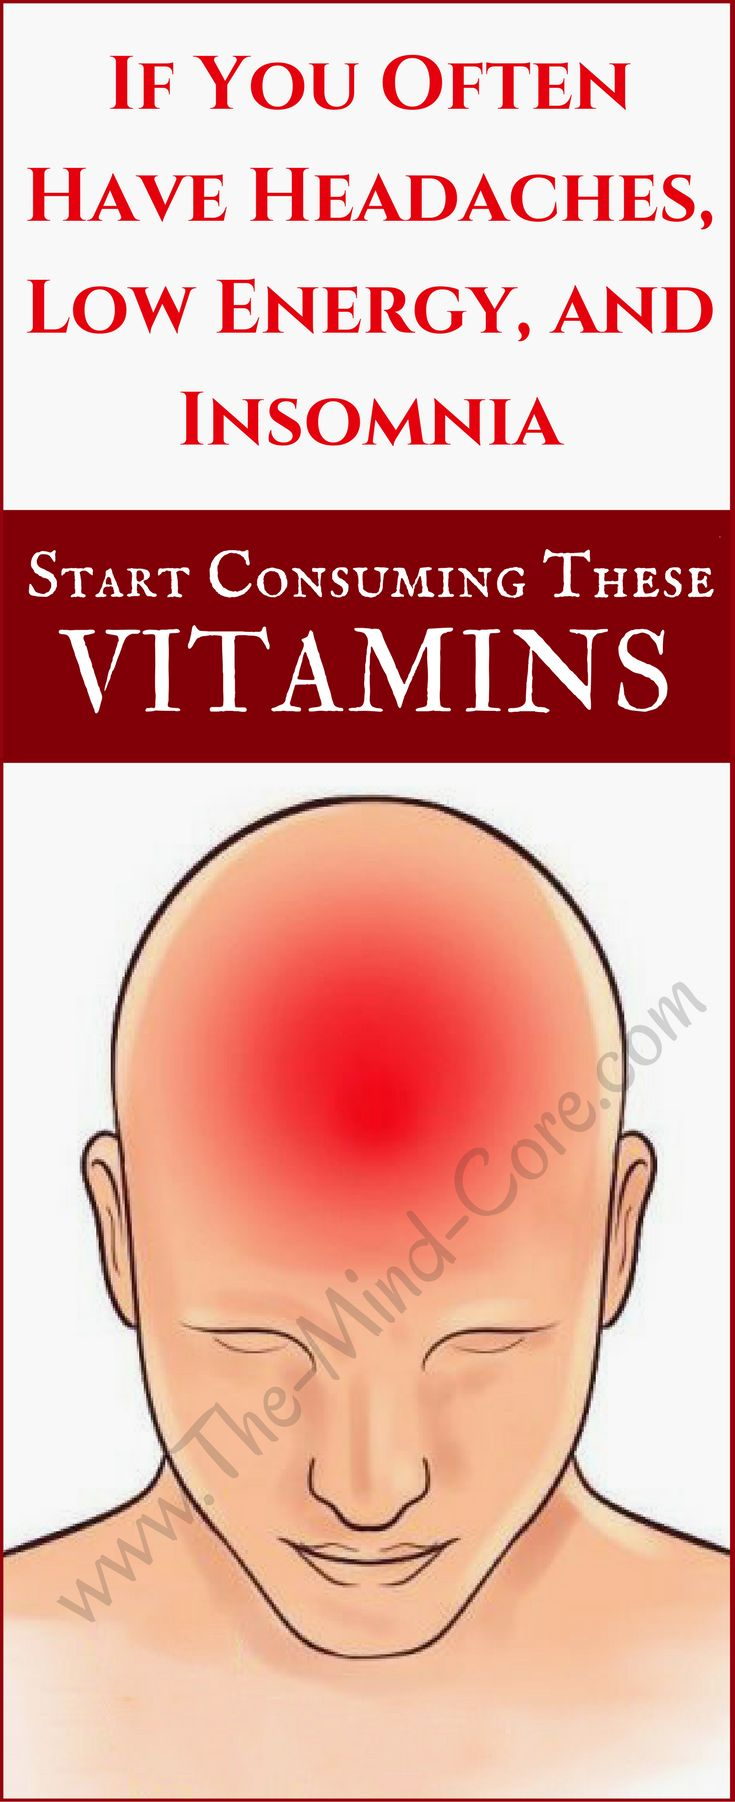 ATTENTION: Do You Often Have Headaches, Low Energy and Insomnia?! You MUST Consume These Vitamins!